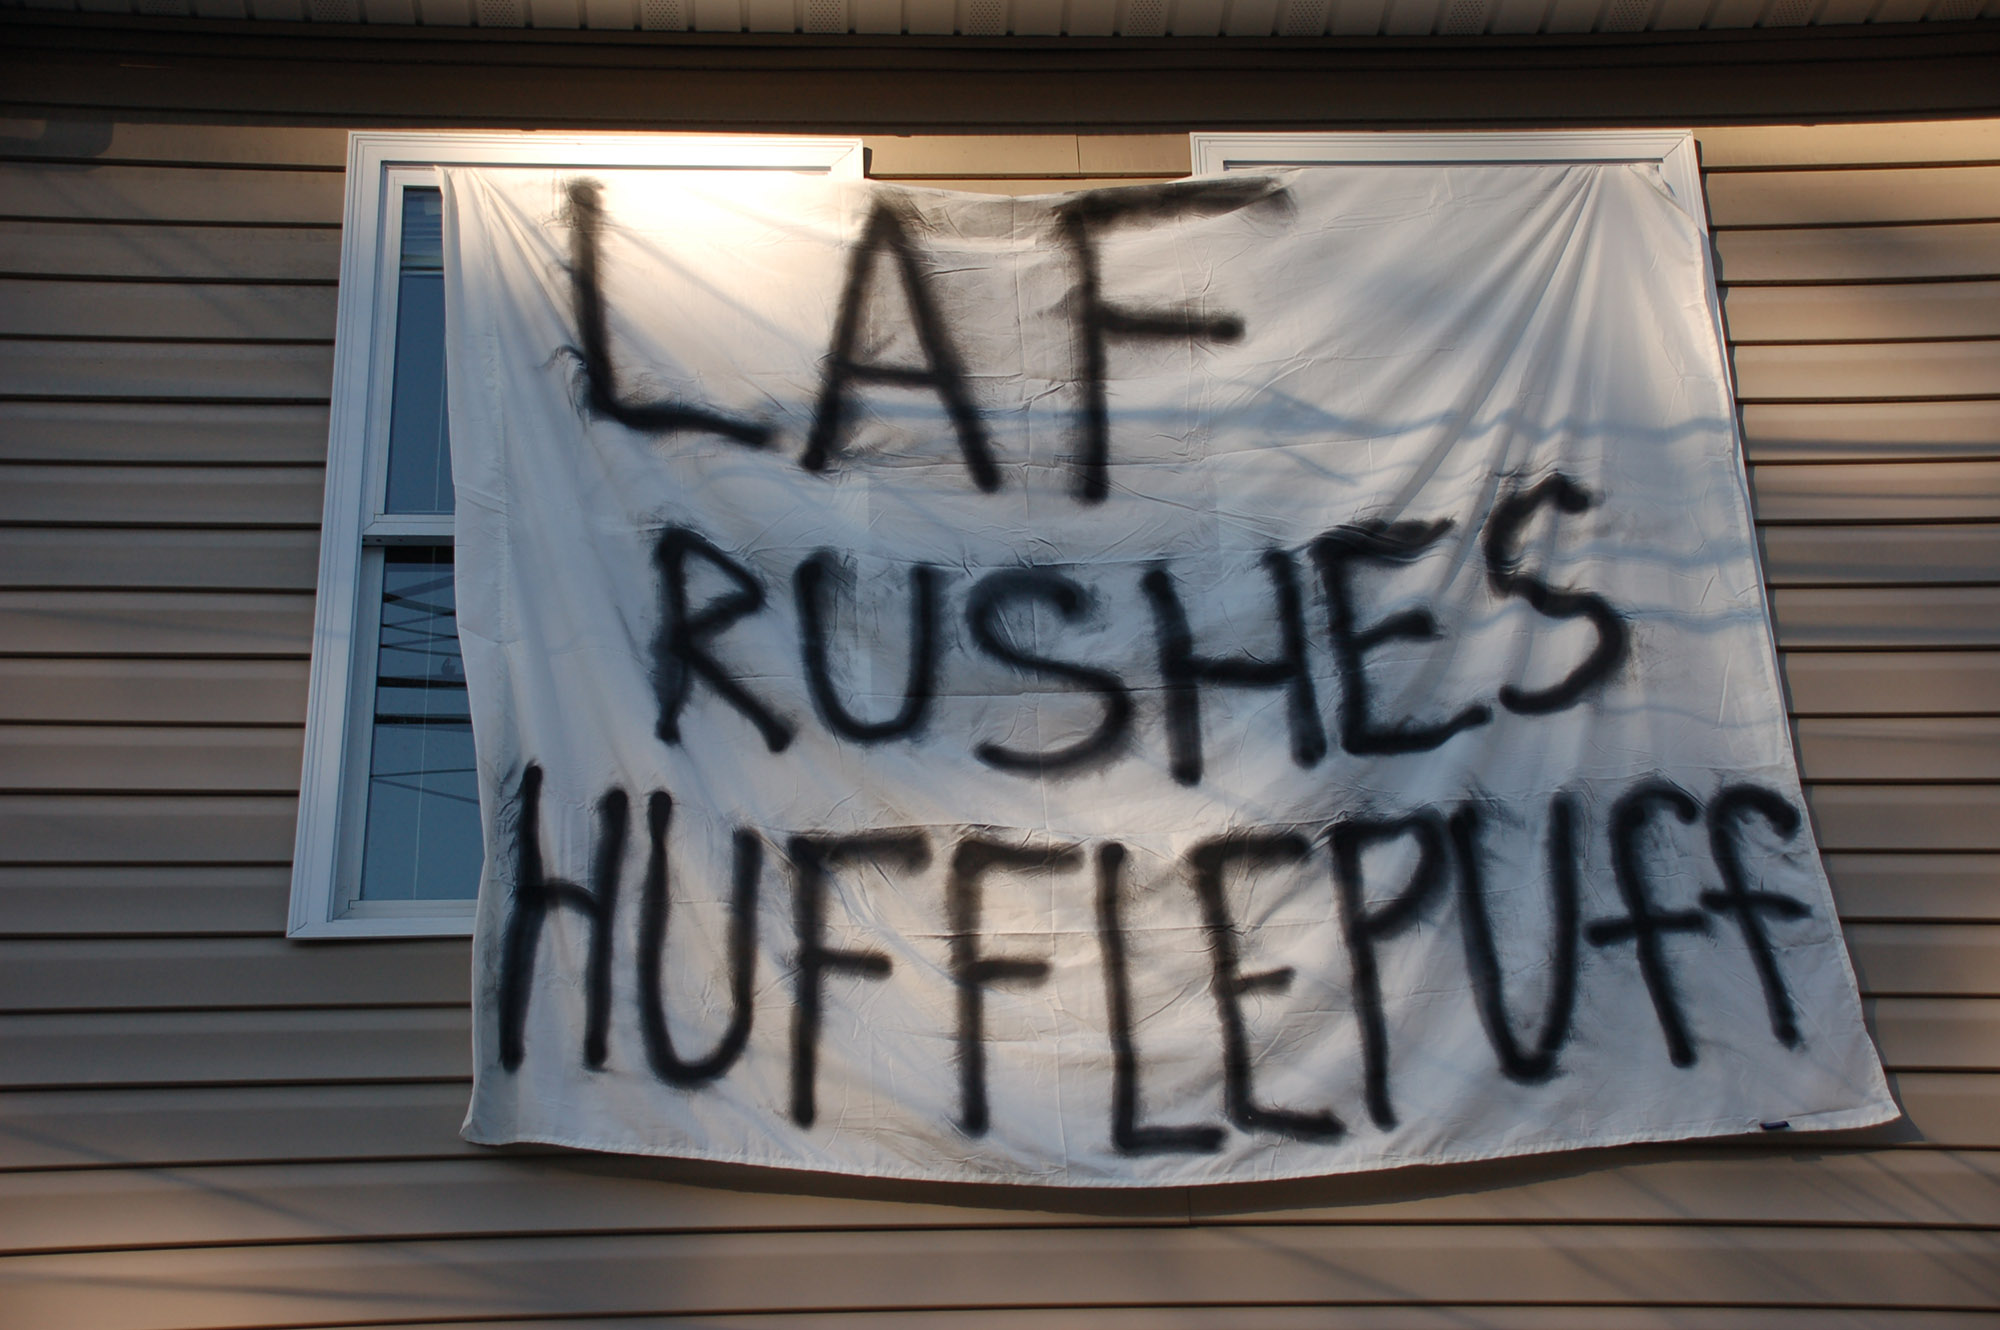 "A sign reading ""Laf rushes Hufflepuff"" hangs on a house on East Fifth Street on Nov. 18, 2016. The sign references the housing system from the Harry Potter books. (Gaby Morera/B&W Staff)"